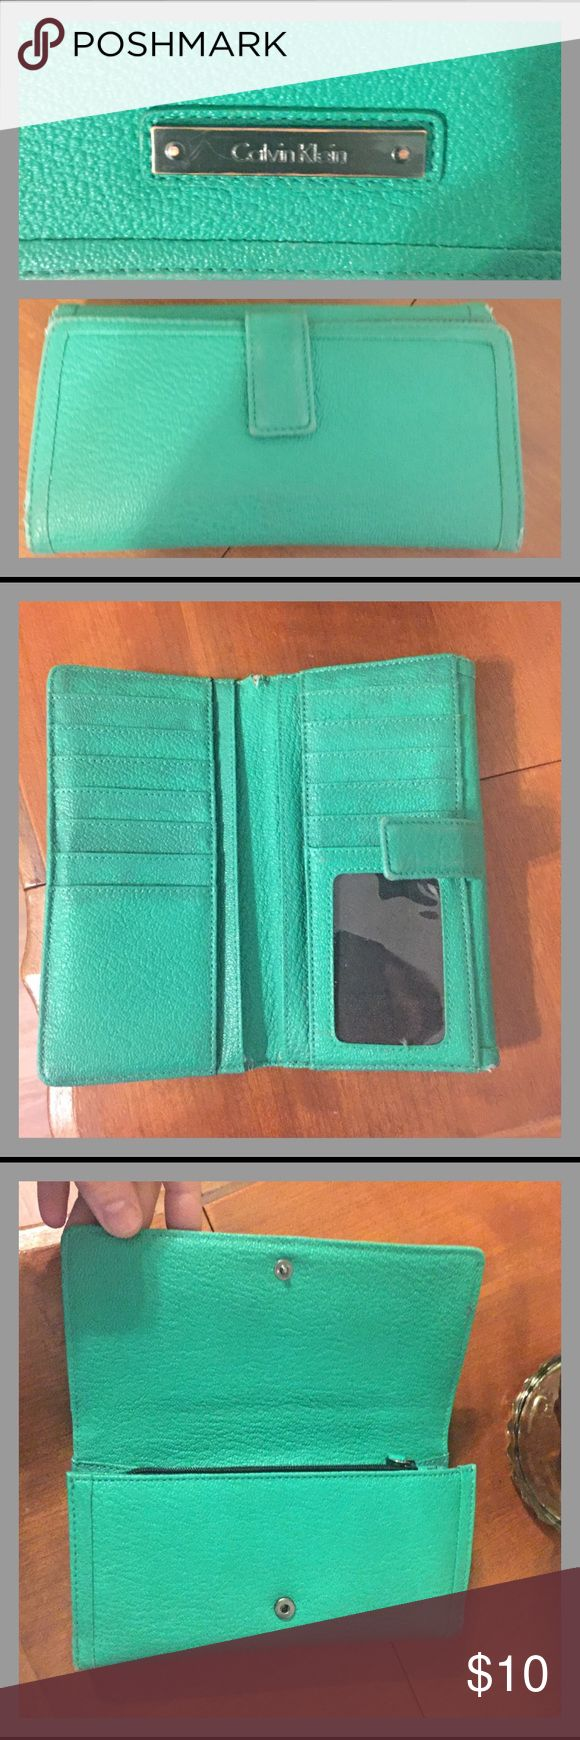 Calvin Klein Wallet Ladies Calvin Klein wallet in green.  Two main compartments - one for cash and change (pic 4) and the other for cash, ID, credit cards, etc (pic 2).  12 credit card slots and one slot for ID.  It's in good pre-owned condition, but there definitely signs of wear.  Some discoloration, especially in the part shown in pic 2.  Also some tearing, as noted in pic 2.  Some signs of wear along the edges of the wallet.  🌟 TOP RATED SELLER 🌟 FAST SHIPPER 🌟 Calvin Klein Bags…